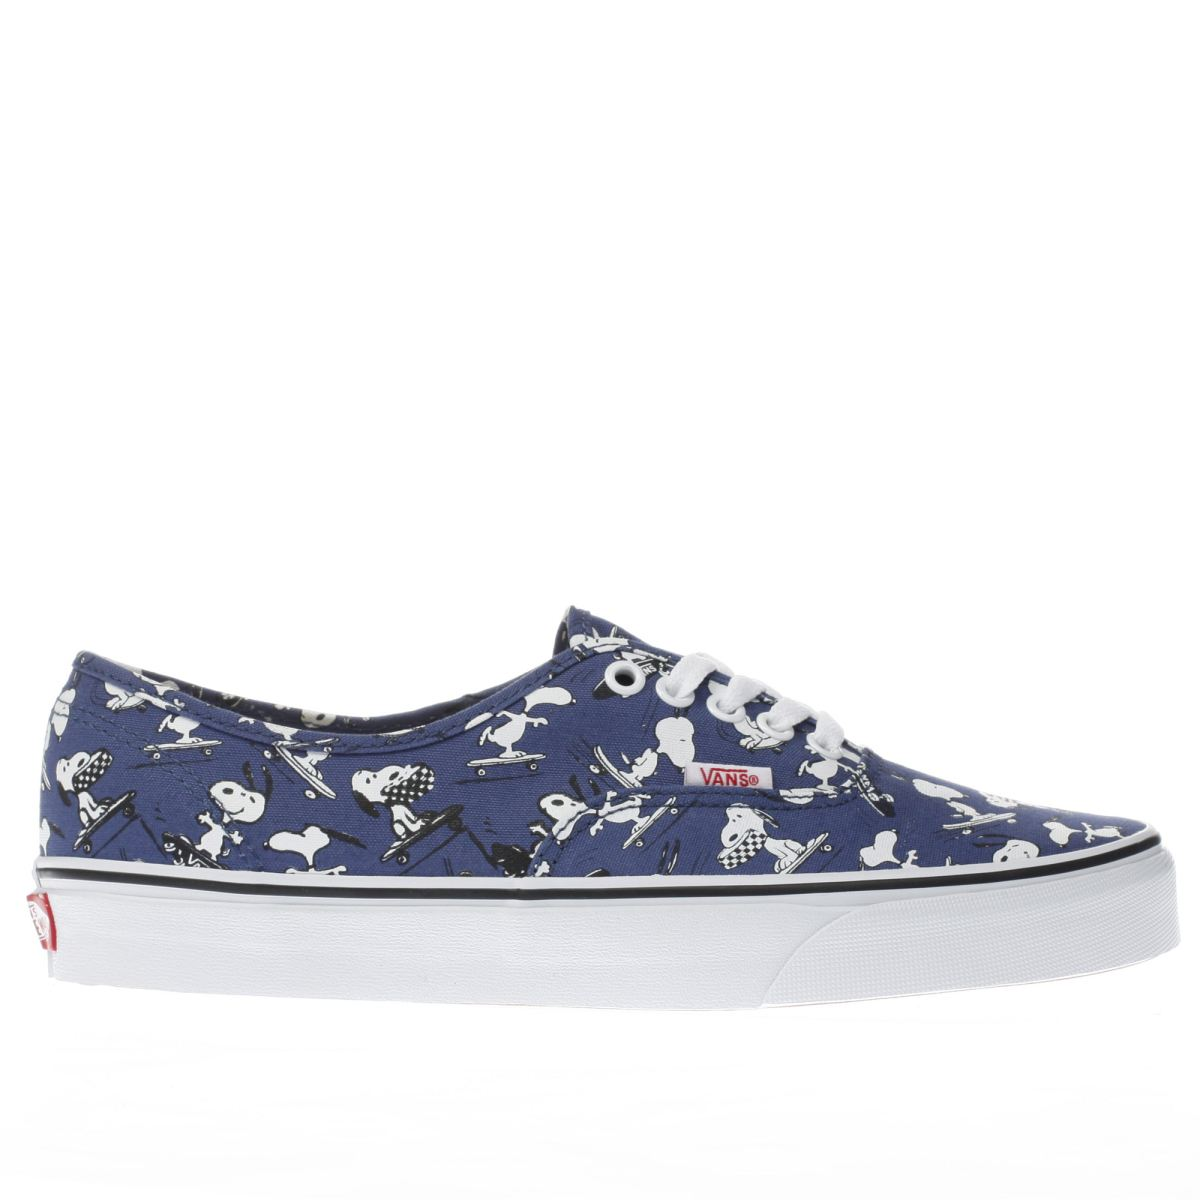 vans navy & white authentic peanuts snoopy trainers